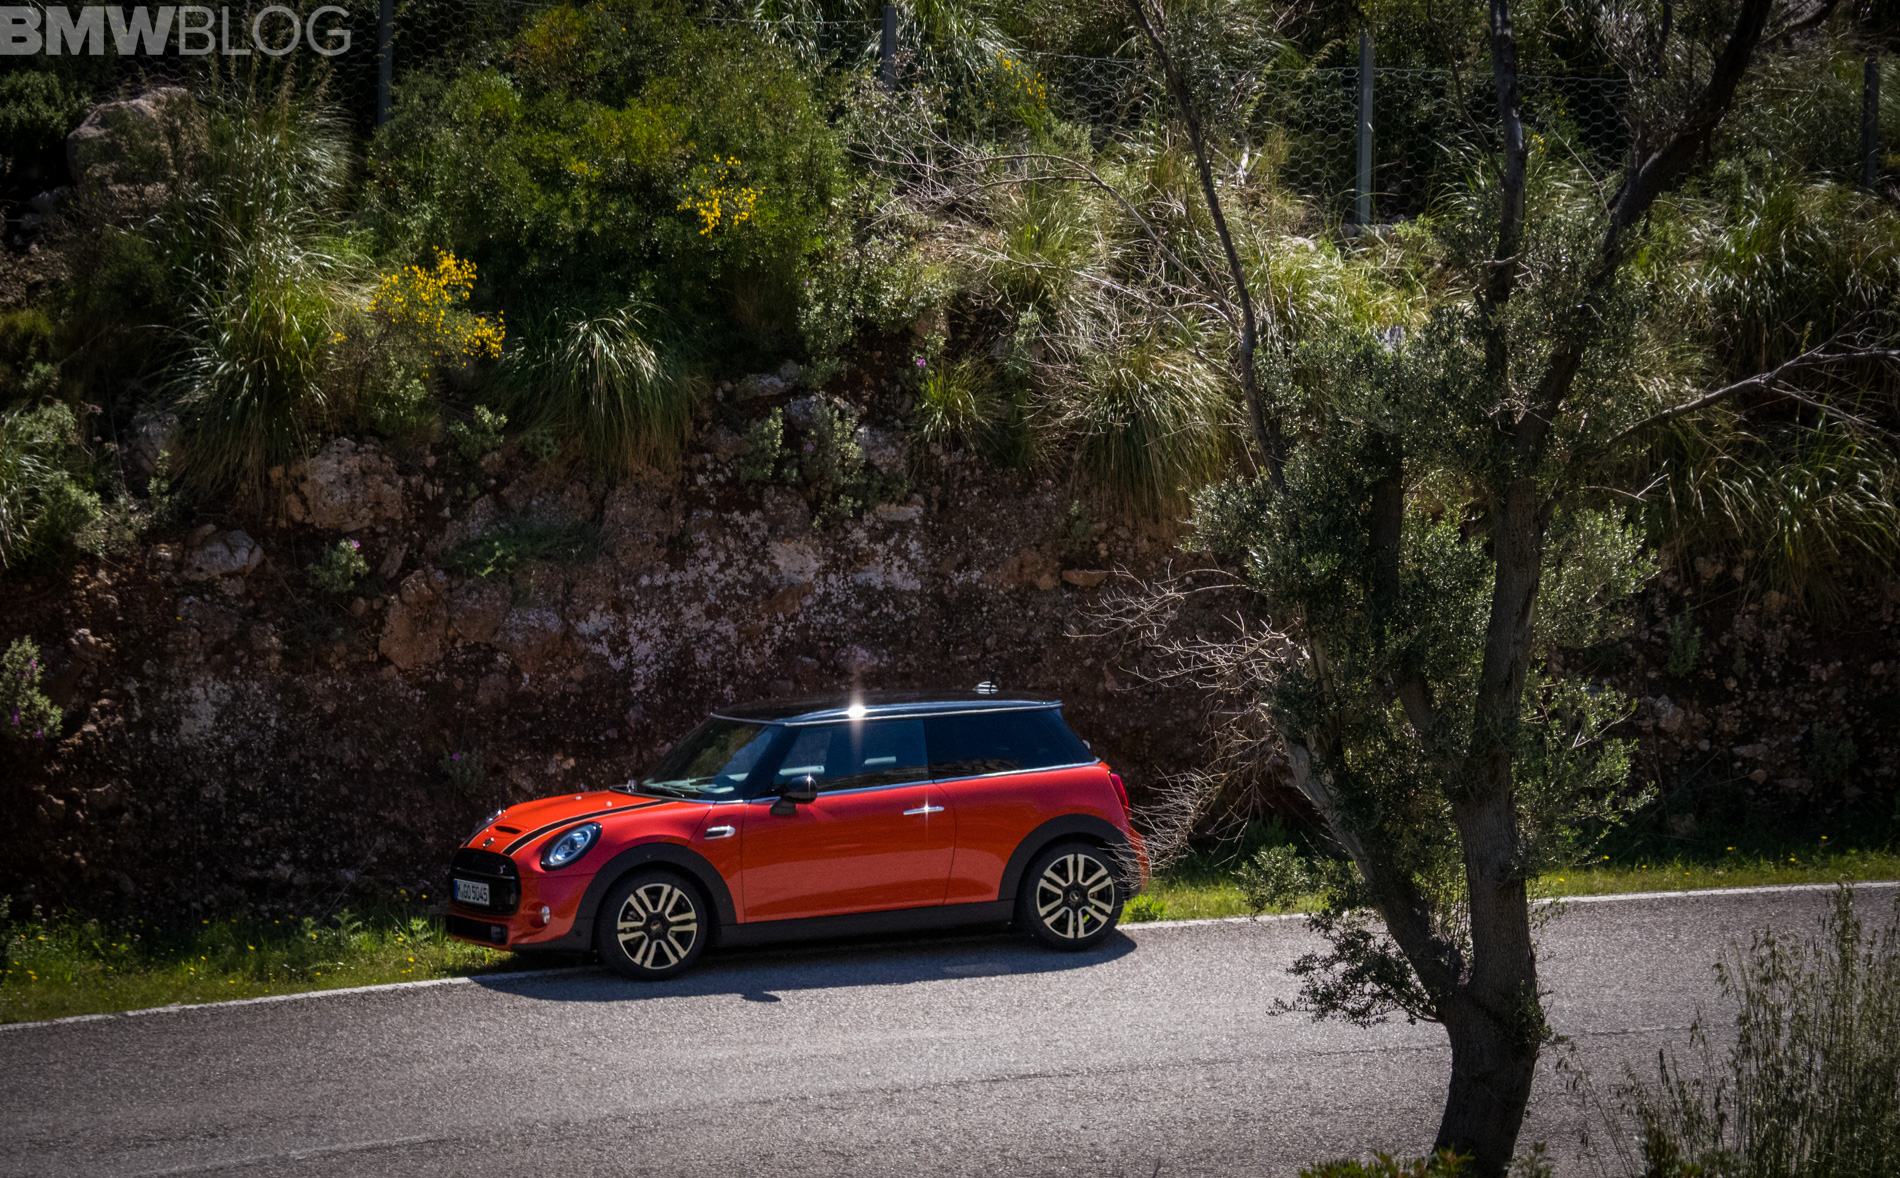 2018 MINI Hatchback 1